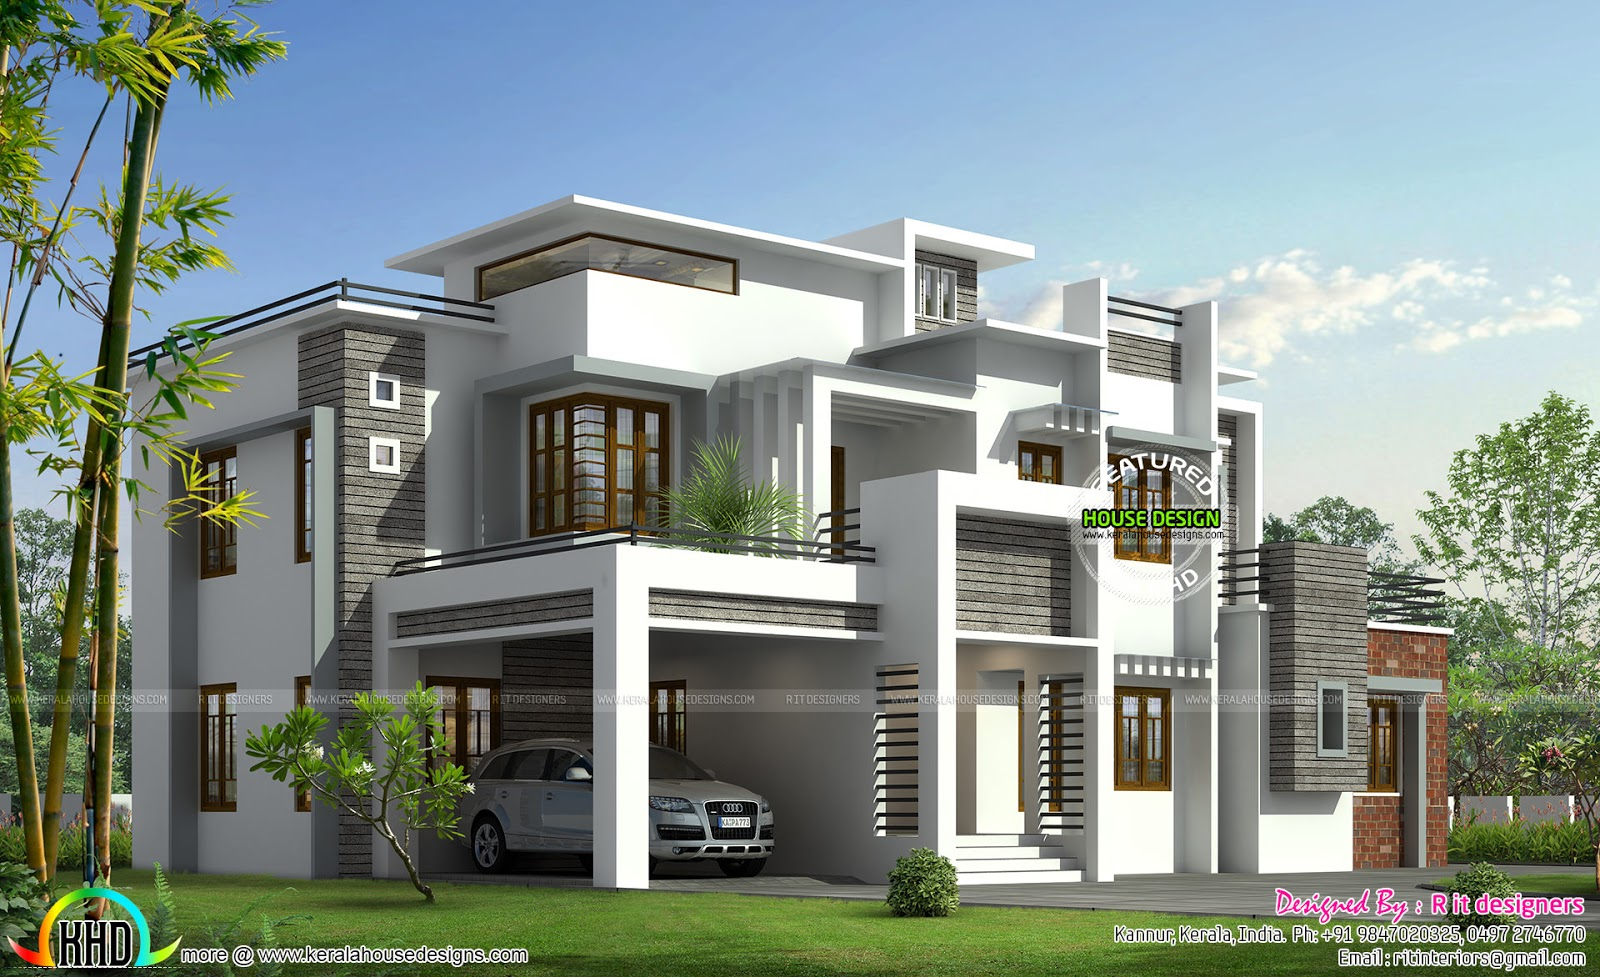 Box model contemporary house kerala home design and for New contemporary home designs